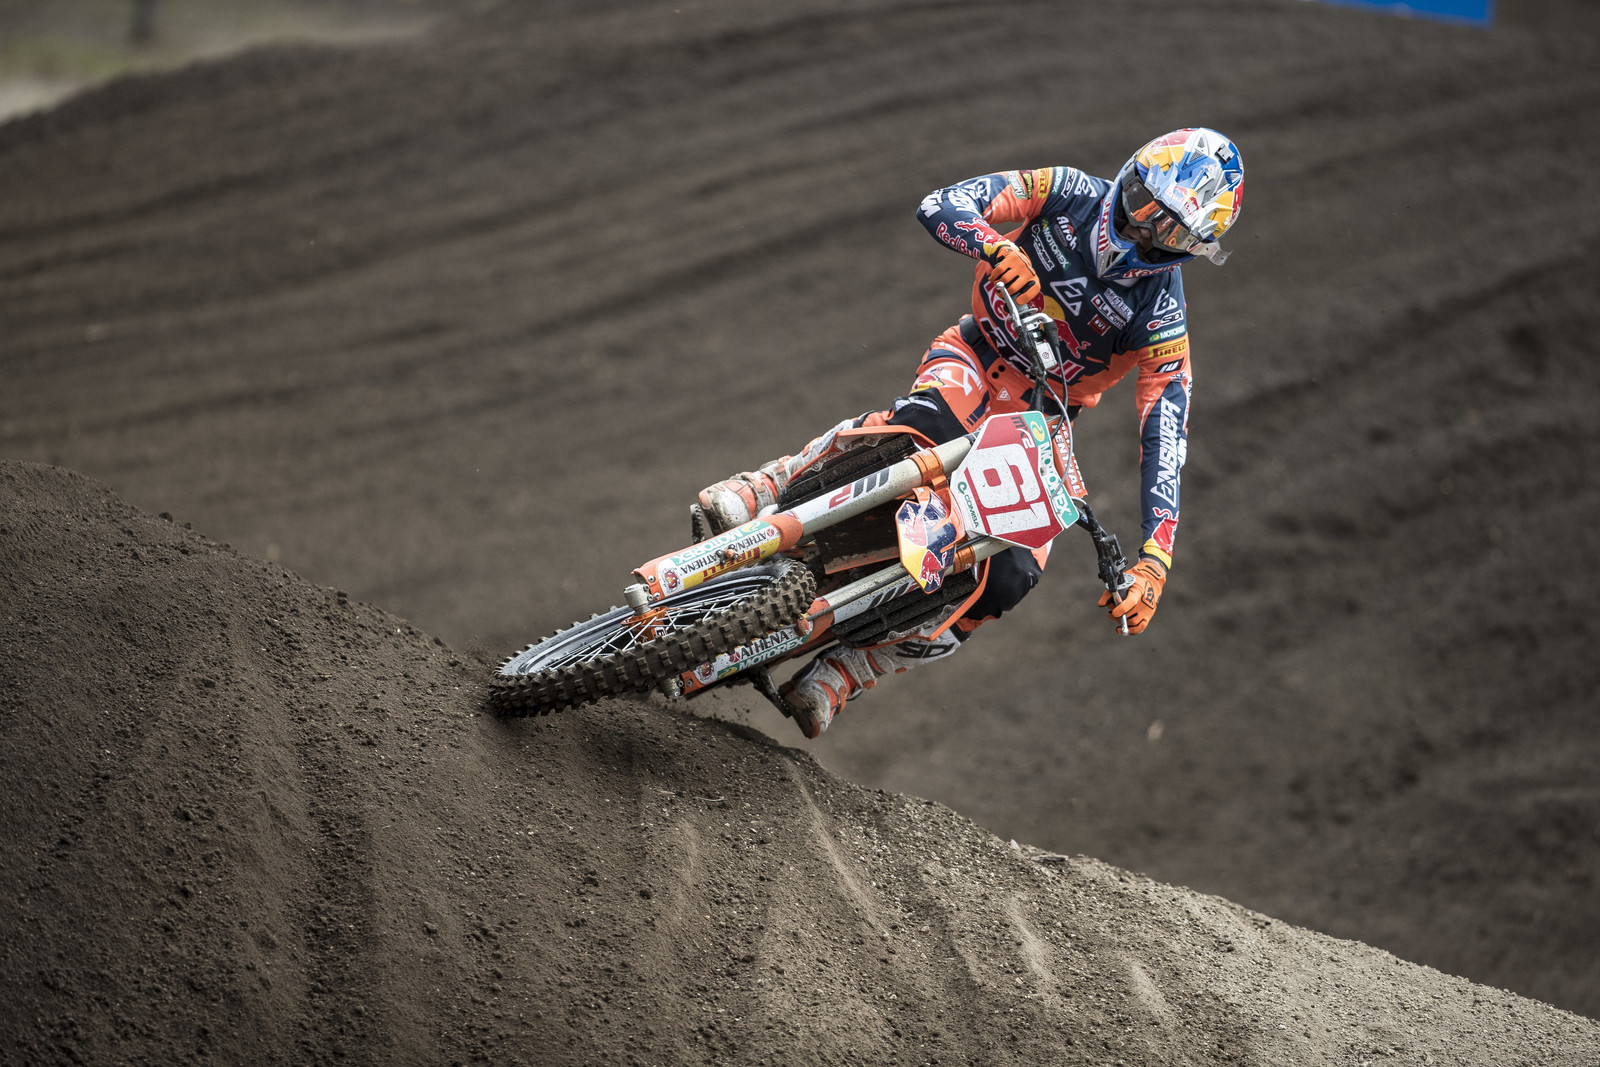 Red Bull KTM MX2 rider Jorge Prado put together two great rides to come away 1-1 in Argentina. His ride at MXoN was no fluke. Photo by Juan Pablo Acevedo